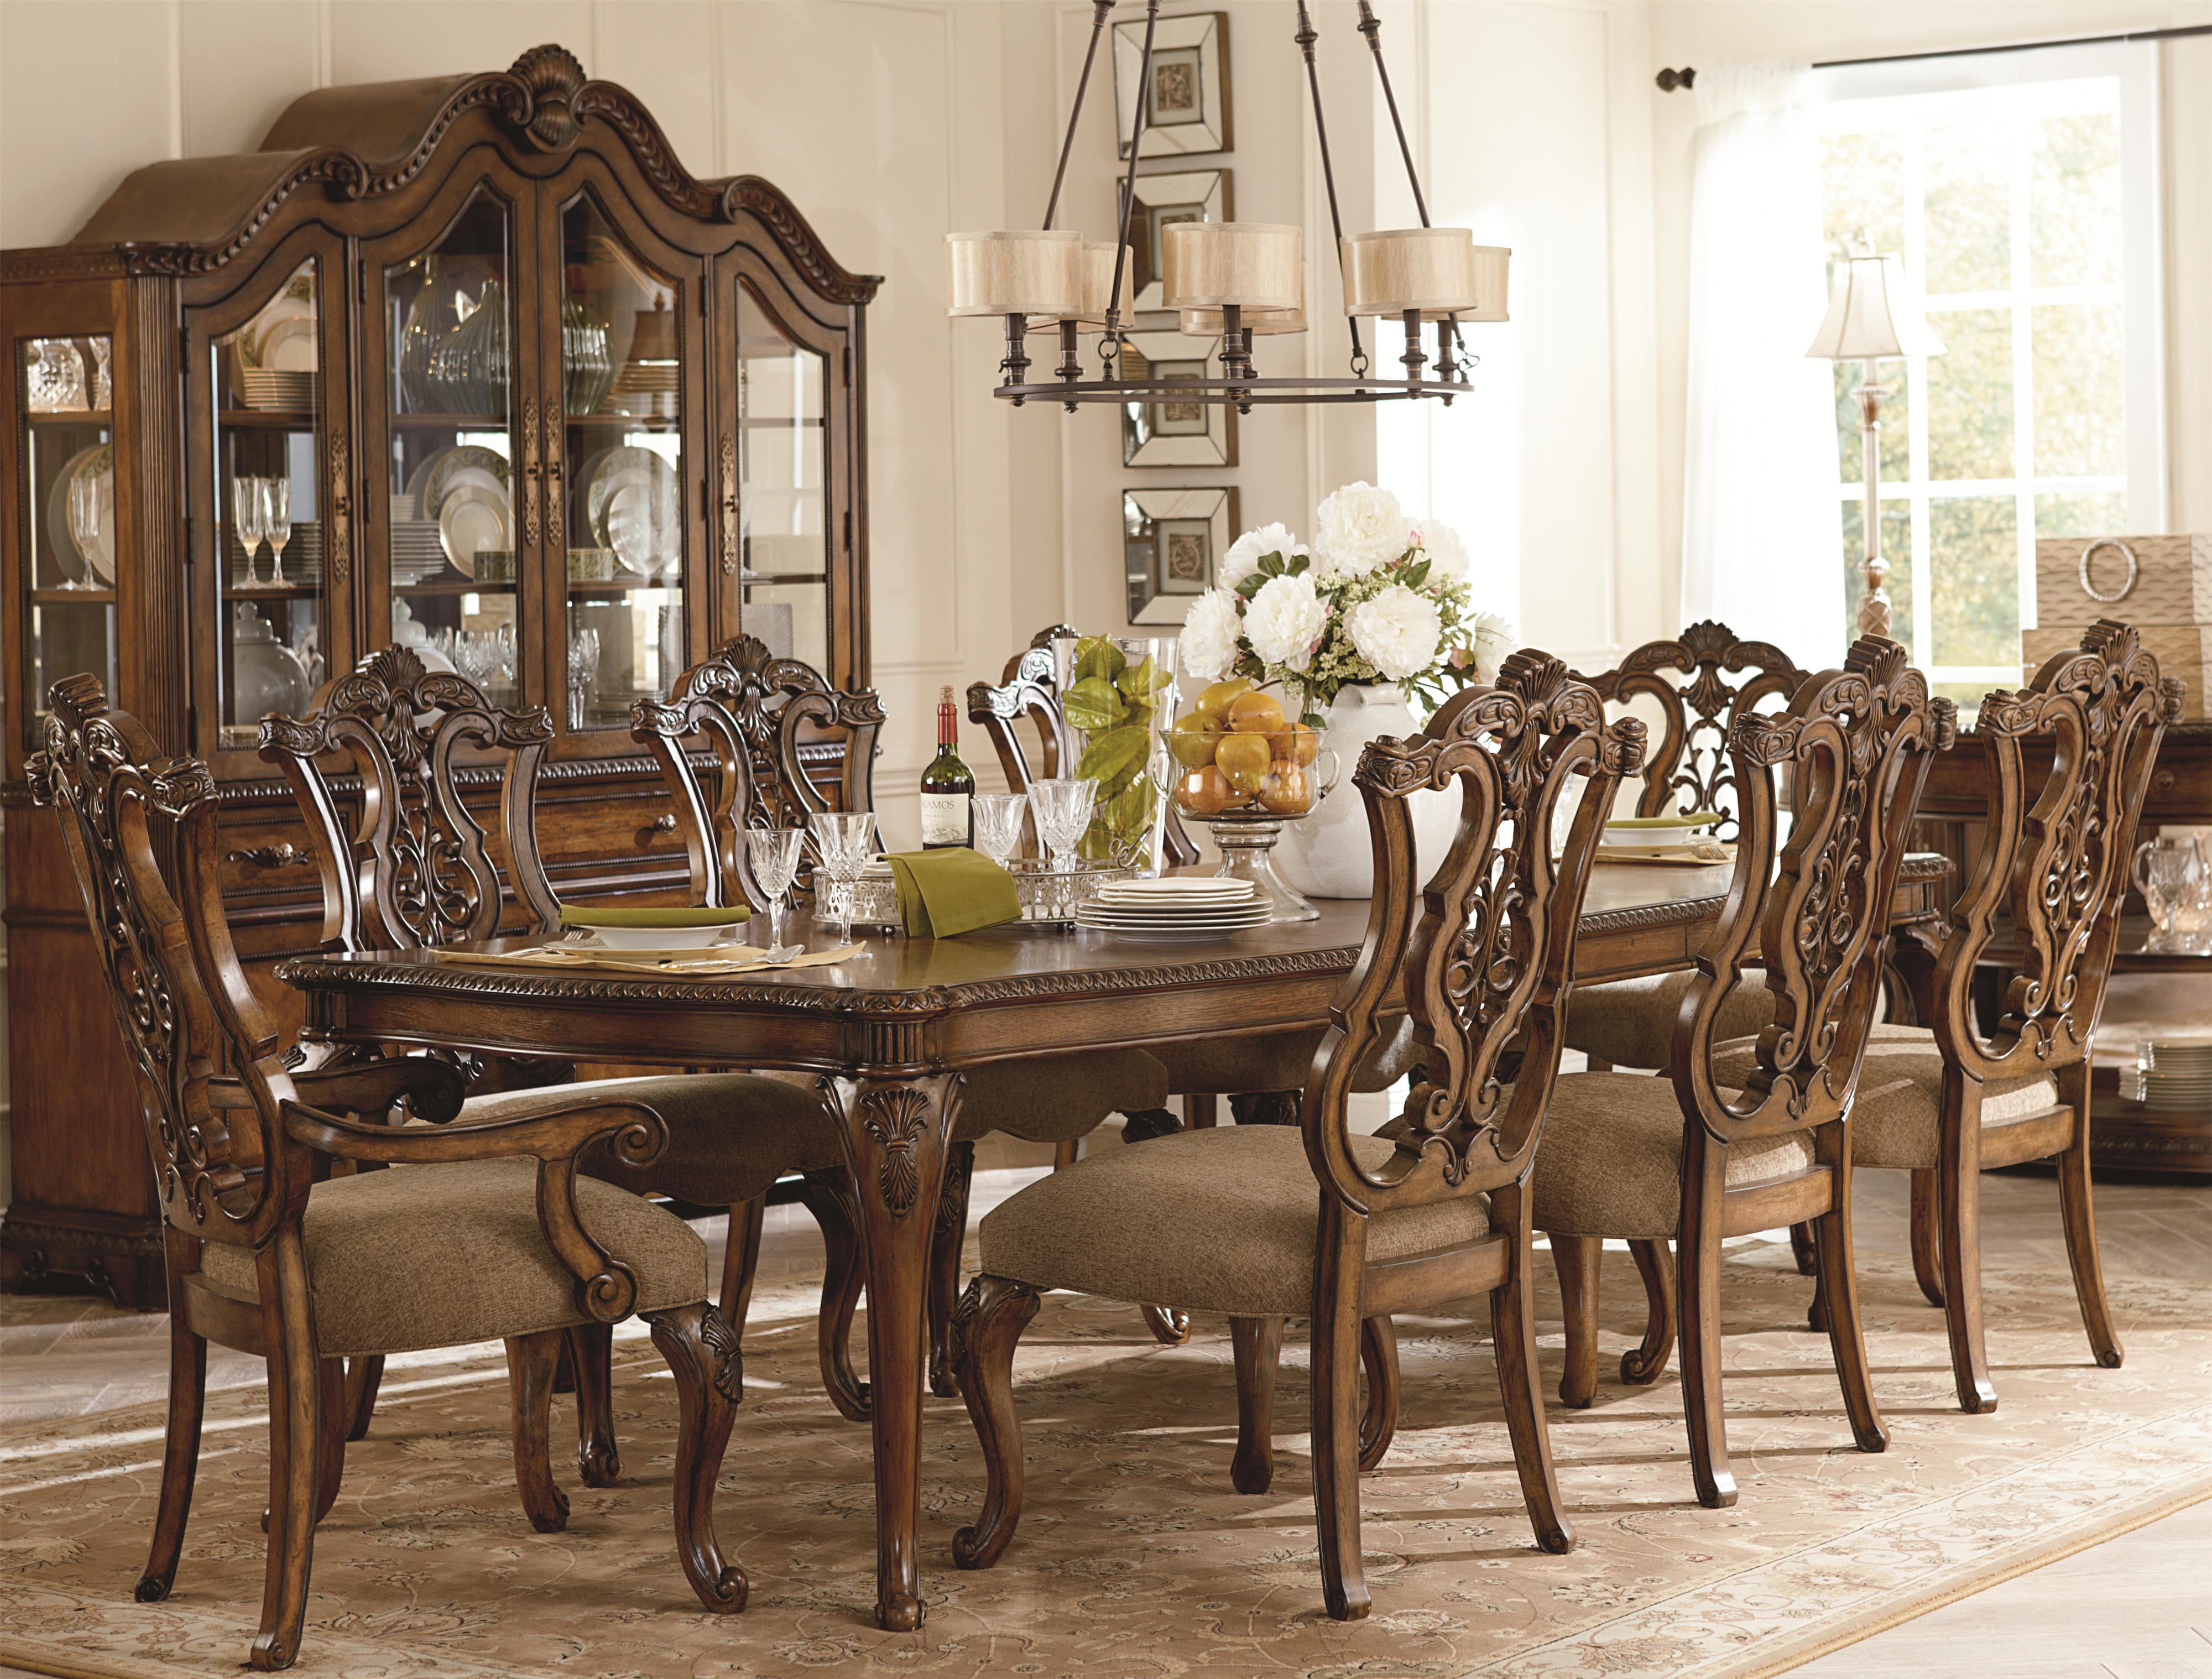 Legacy Classic Pemberleigh 9 Piece Table and Chairs Set - Item Number: 3100-222+6x140 KD+2x141 KD